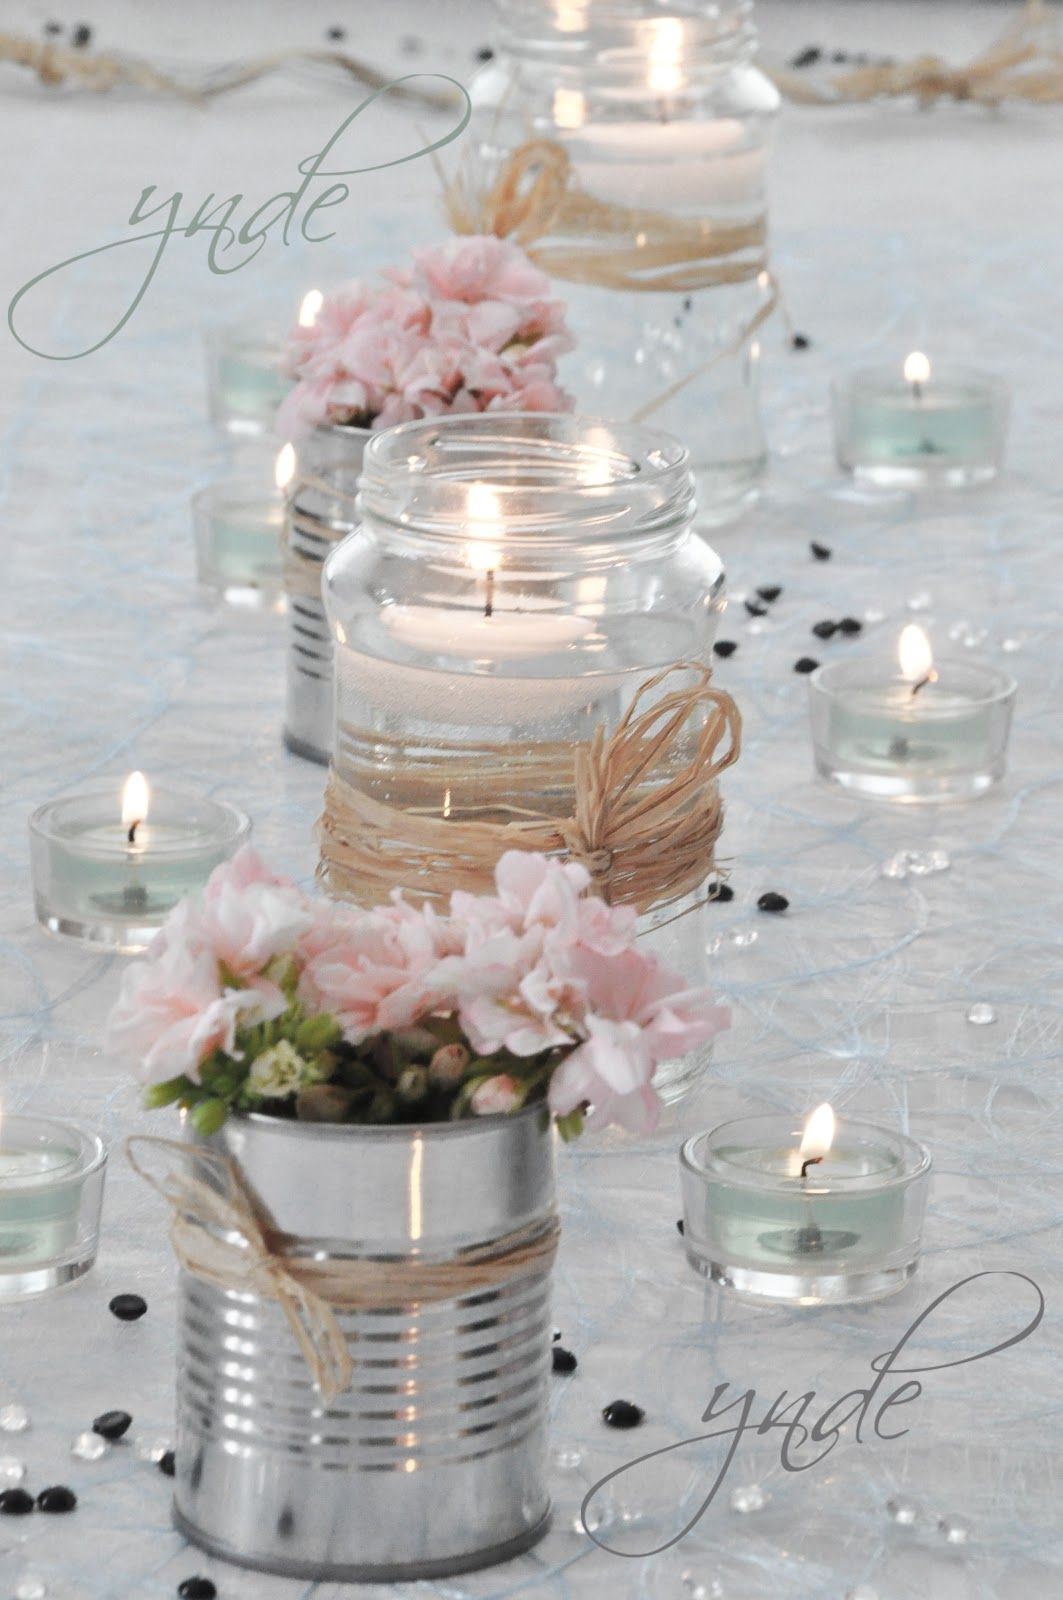 Centros De Mesa Para Boda Economicos Y Originales Con Velas Simple Aber Schöne Tischdeko Simple Inexpensive And